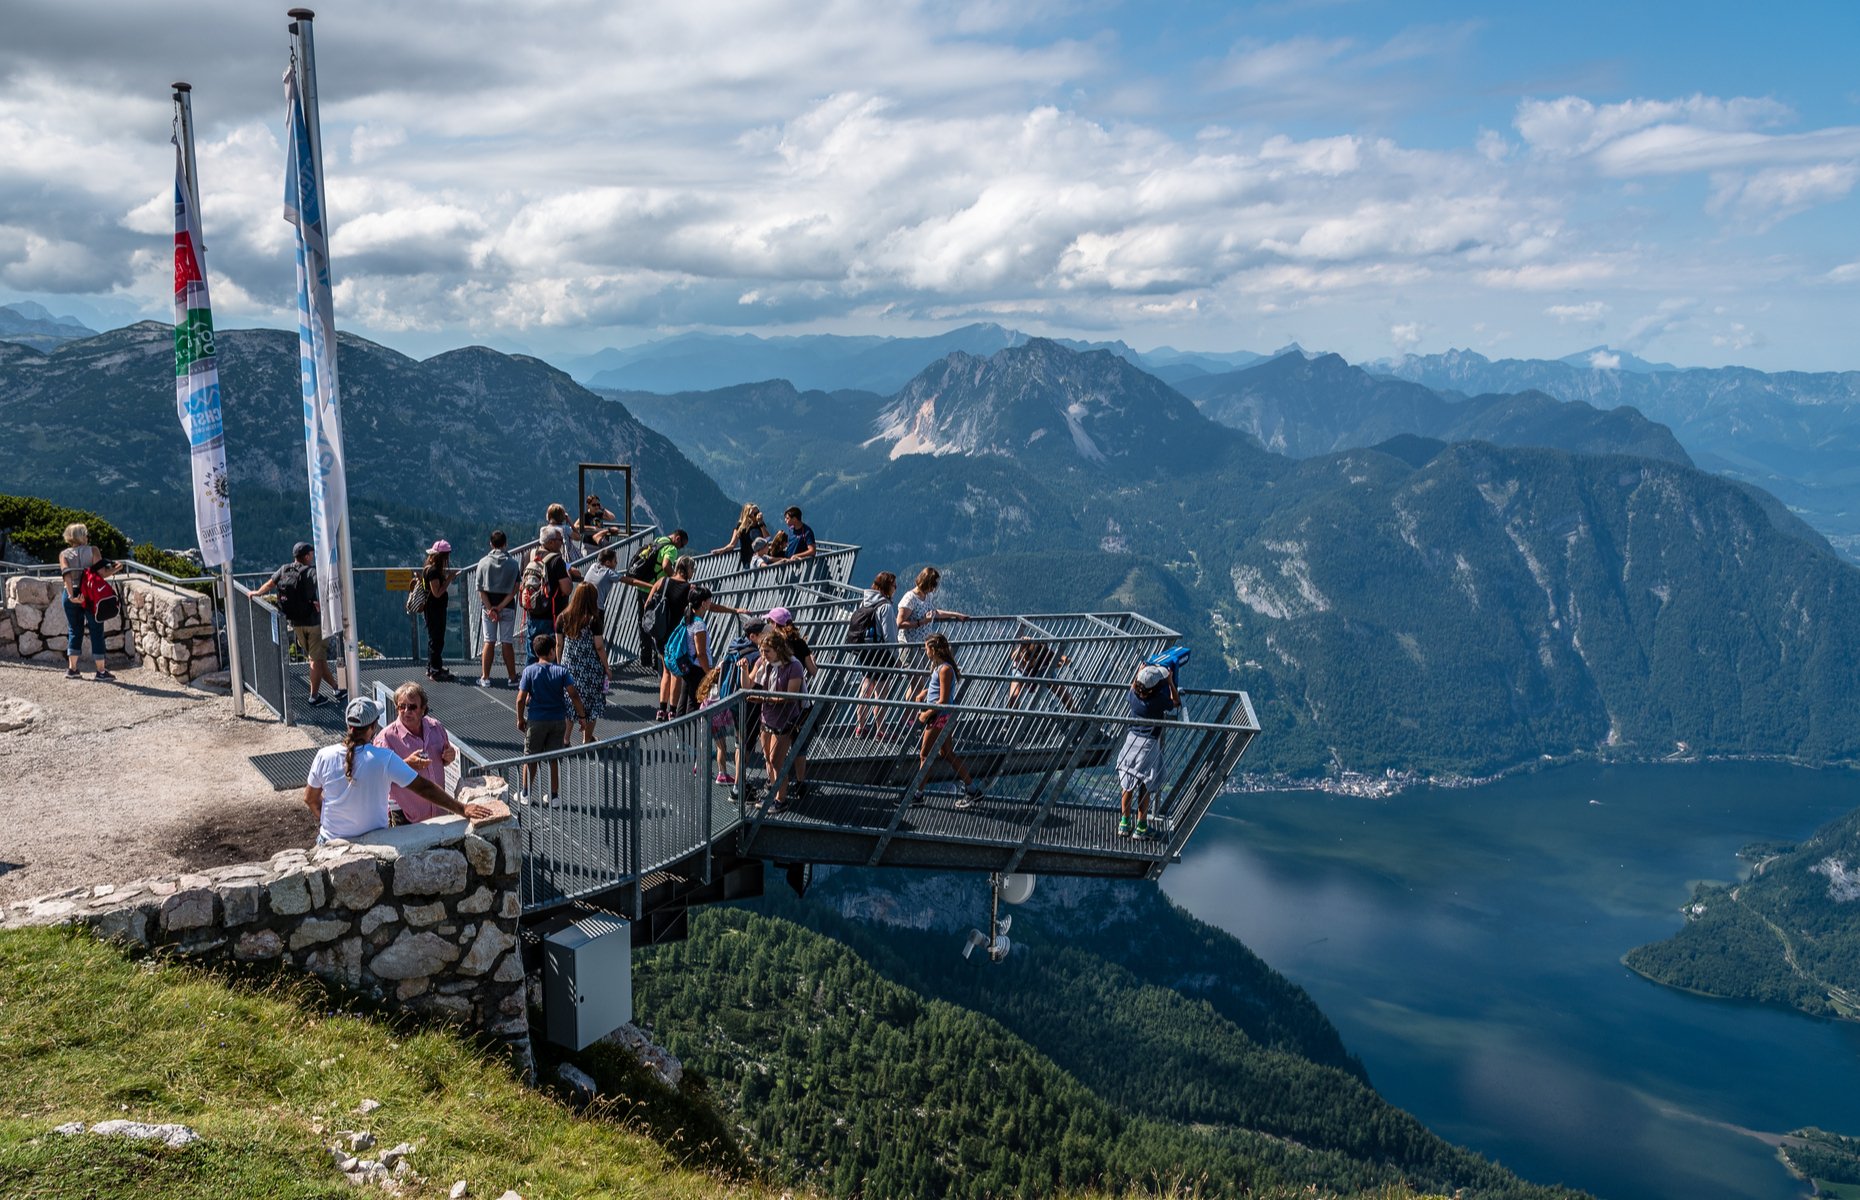 Slide 16 of 16: As the name suggests, the 5fingers viewing platform has five platforms, and each has a different design. One of the platforms has a glass floor, allowing visitors to see the magnificent Austrian Alps under their feet.